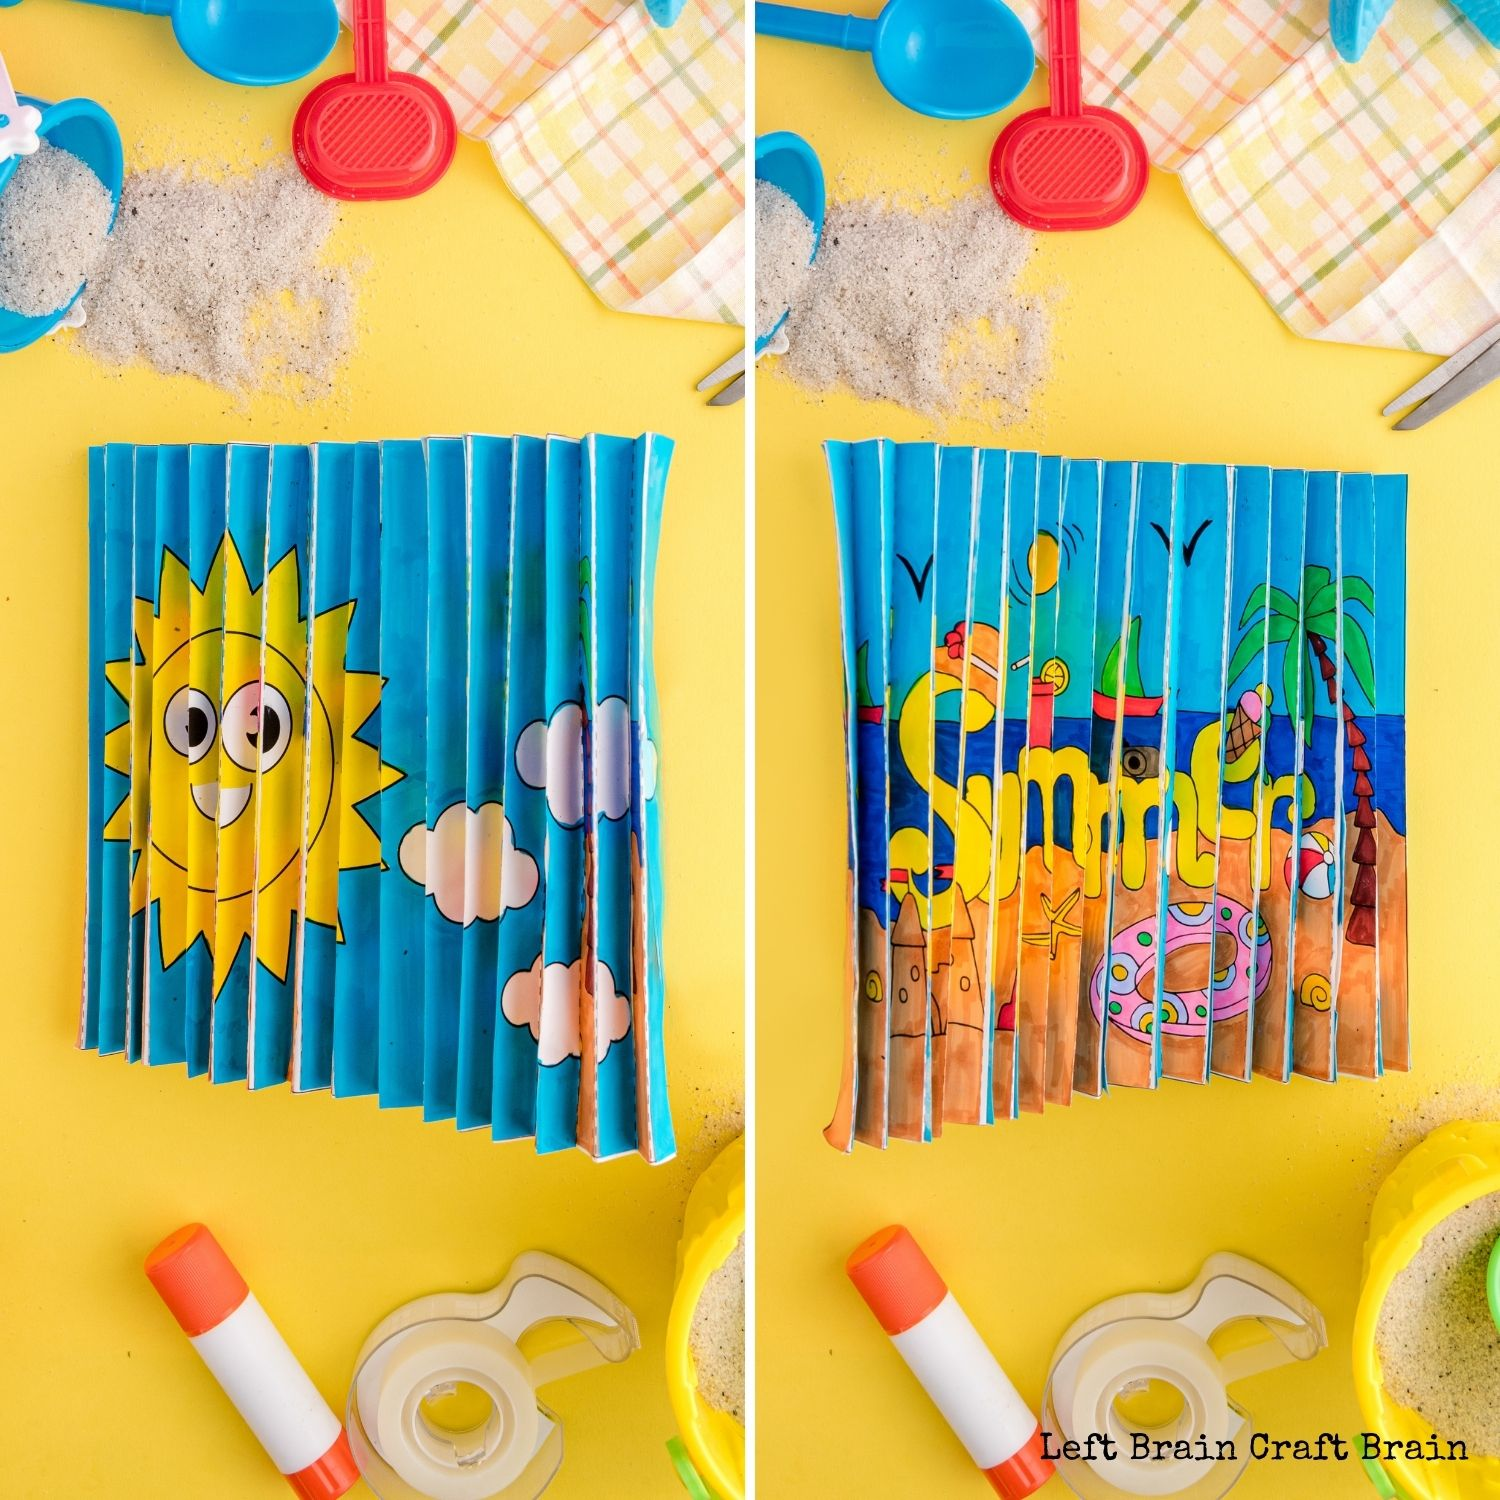 Side by side of both summer agamograph images on yellow with beach toys and sand. Have some fun coloring this summer with an agamograph, a unique paper craft. It flips the picture when you shift the angle for twice the fun.